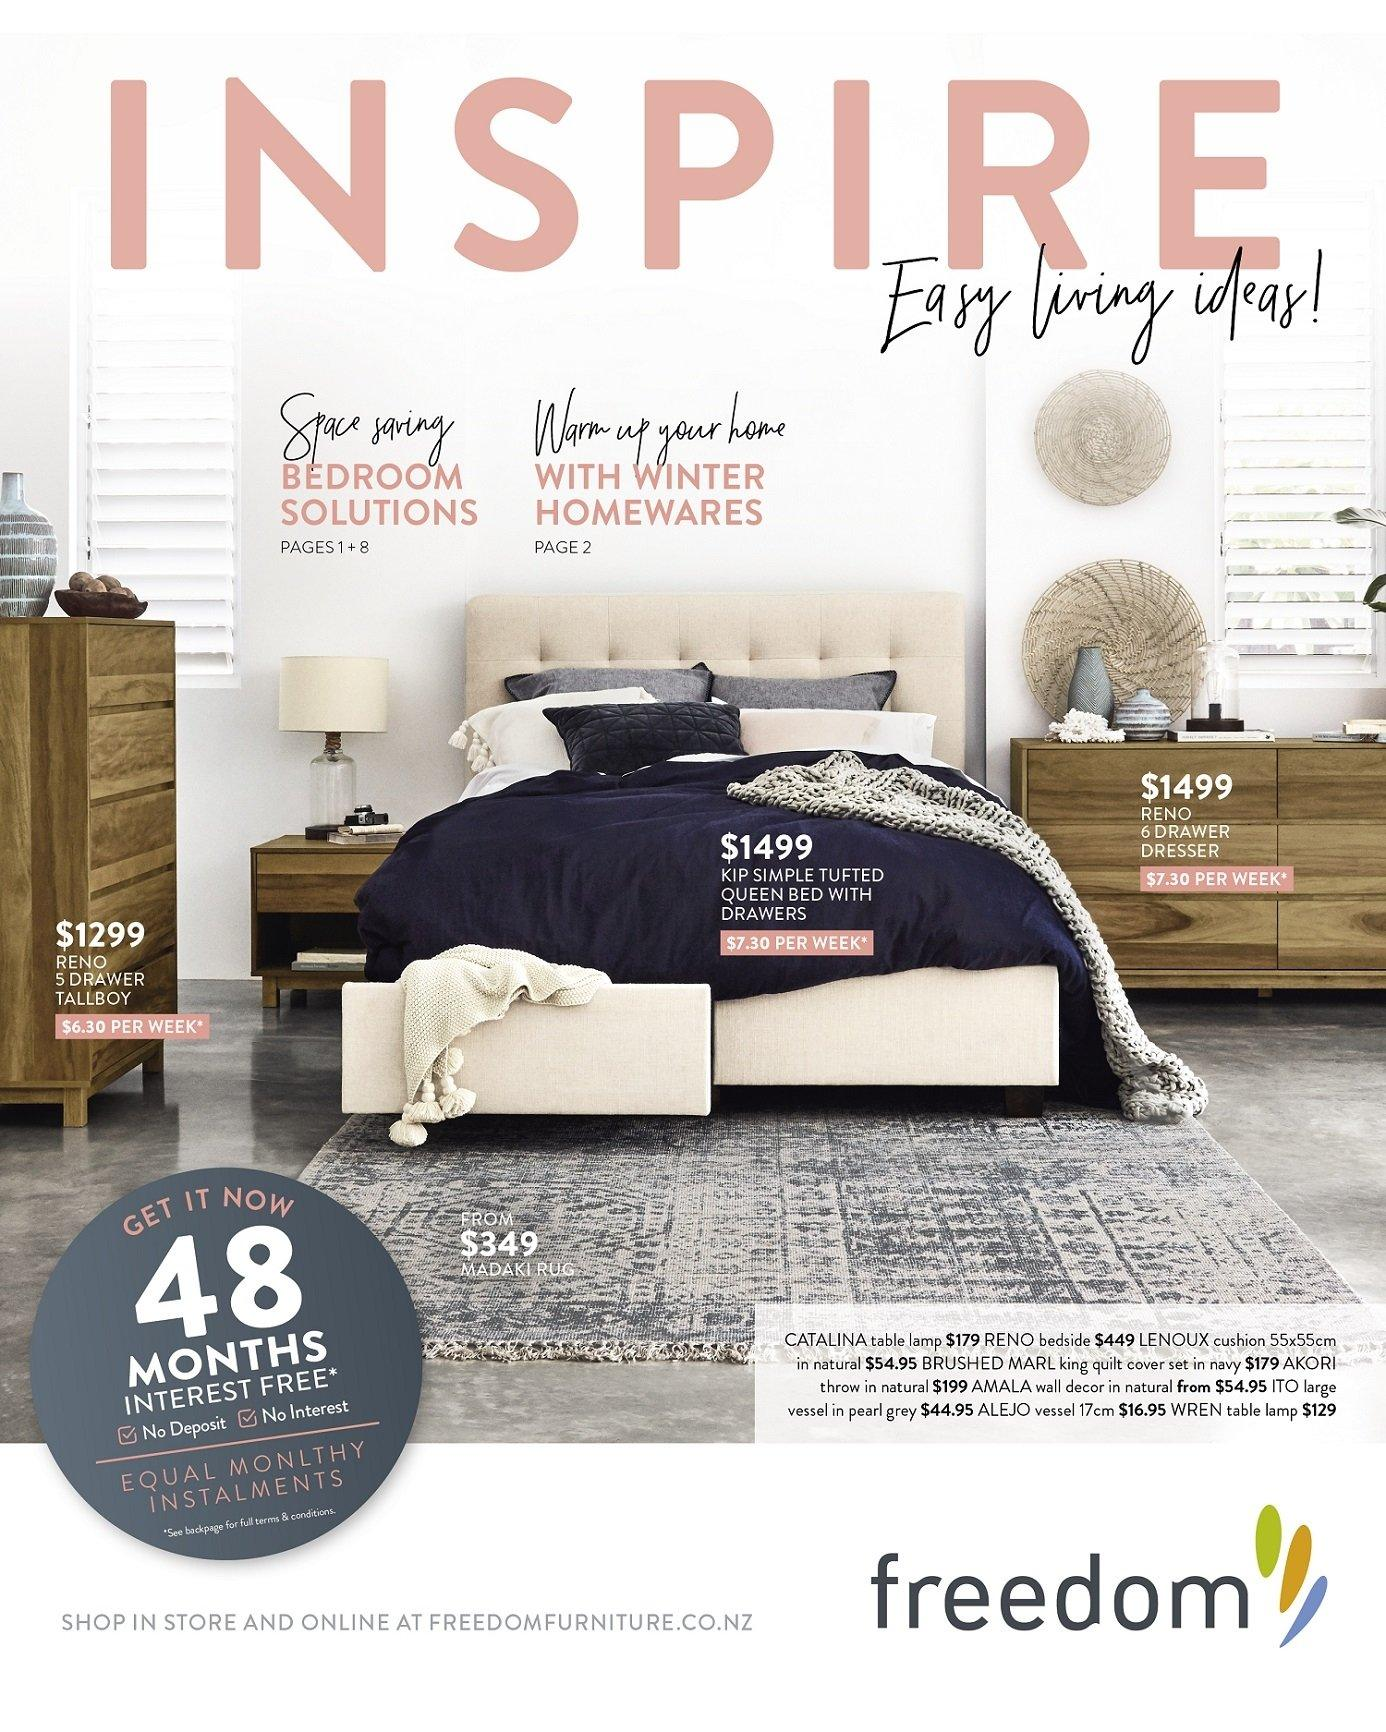 Freedom Furniture mailer - 03.07.2018 - 12.08.2018 - Sales products - queen bed, bed, dresser, cushion, lamp, table lamp. Page 1.